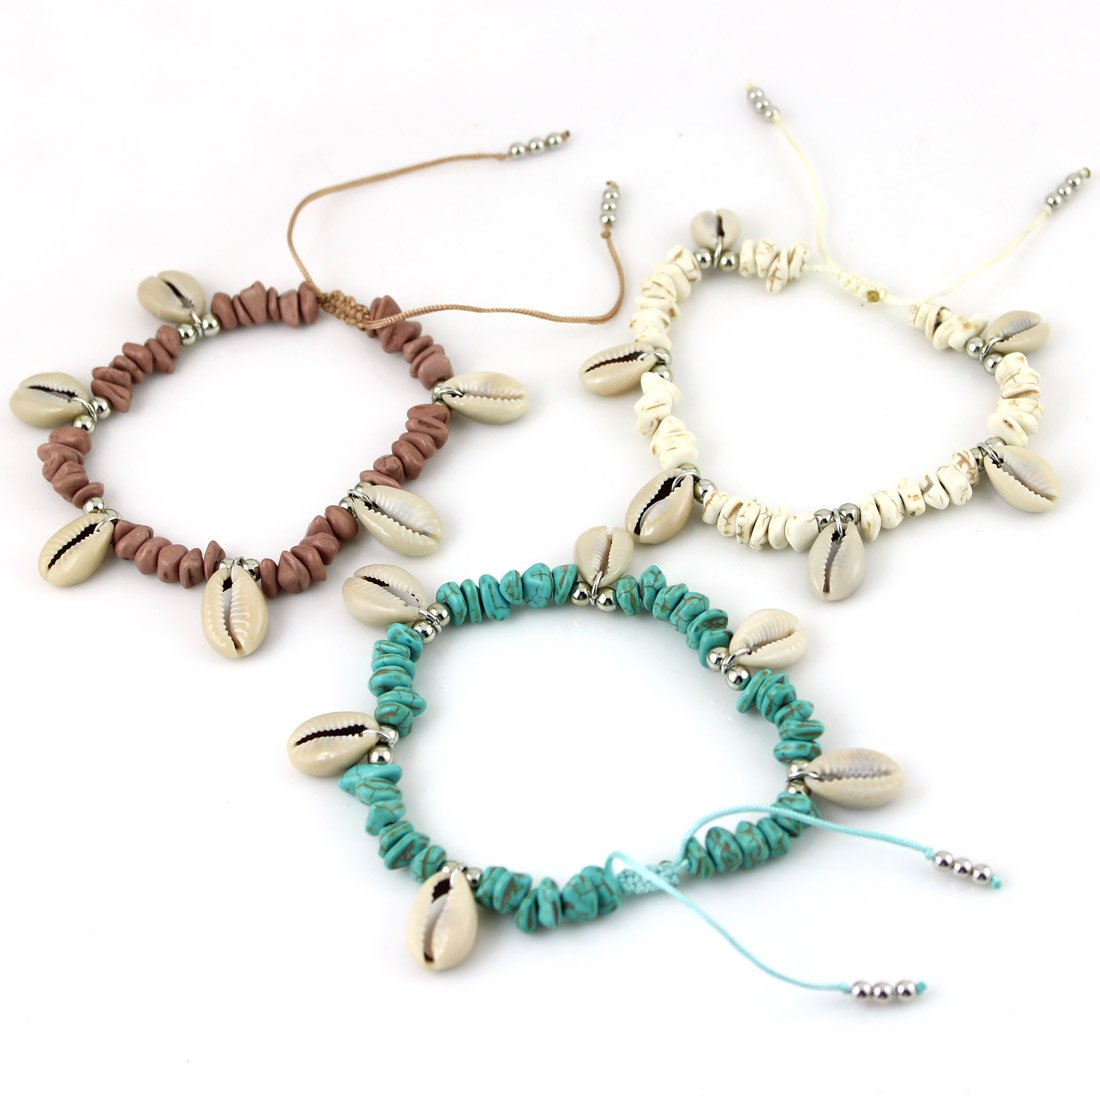 JAASA 3 piece Hot Selling Handmade Bracelets&Anklet Stone Shell Adjustable size Fashion Jewelry Boho Style Summer Accessories